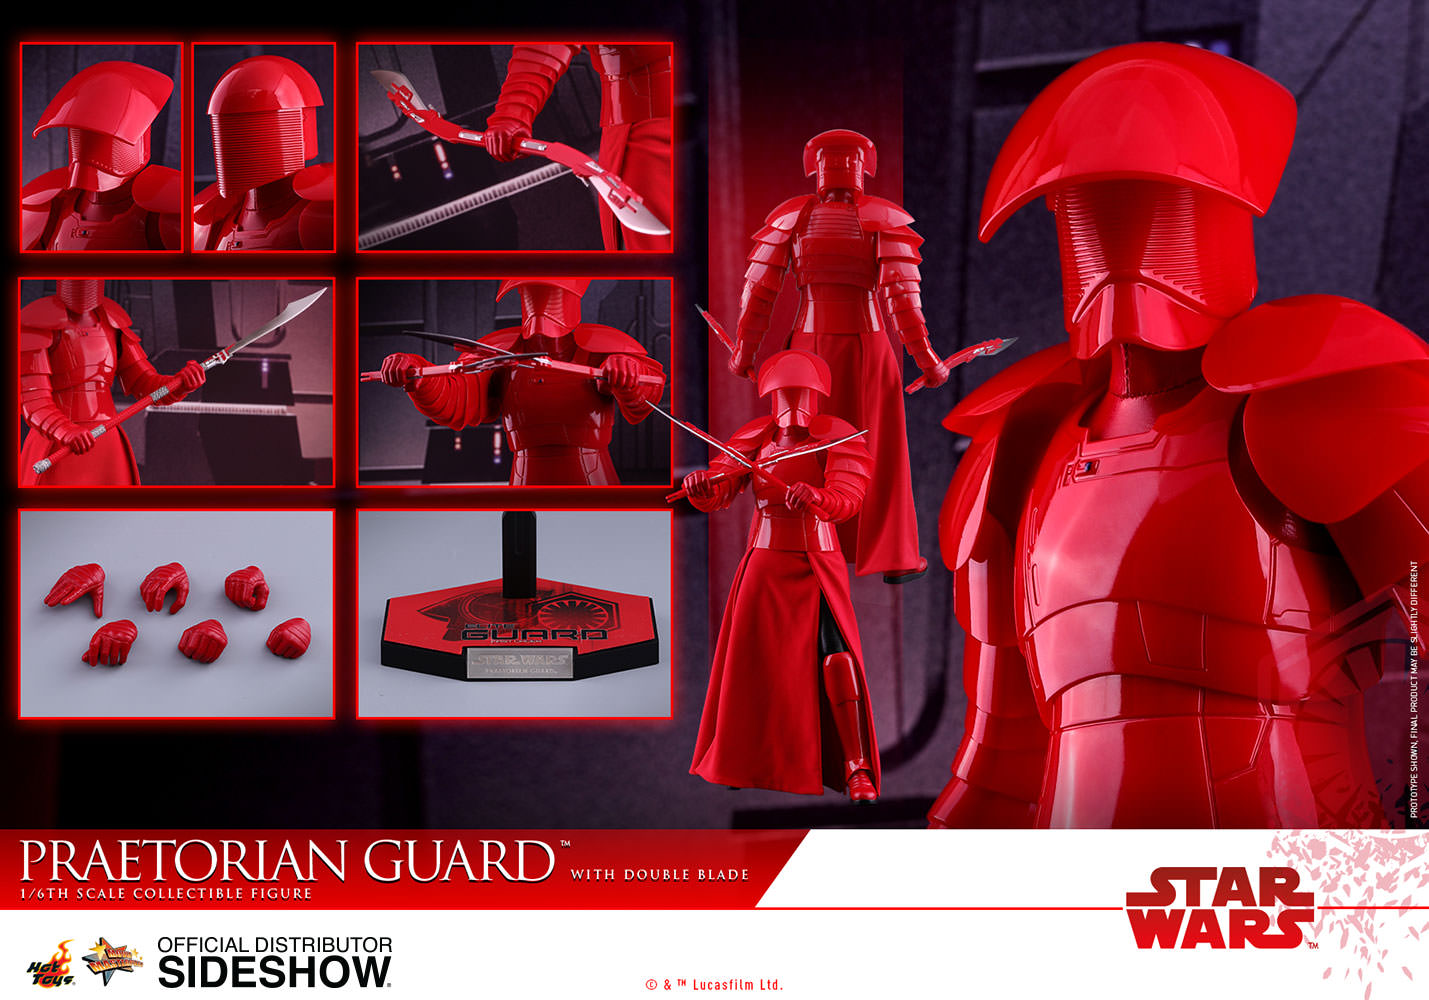 star-wars-praetorian-guard-with-double-blade-sixth-scale-hot-toys-903183-15